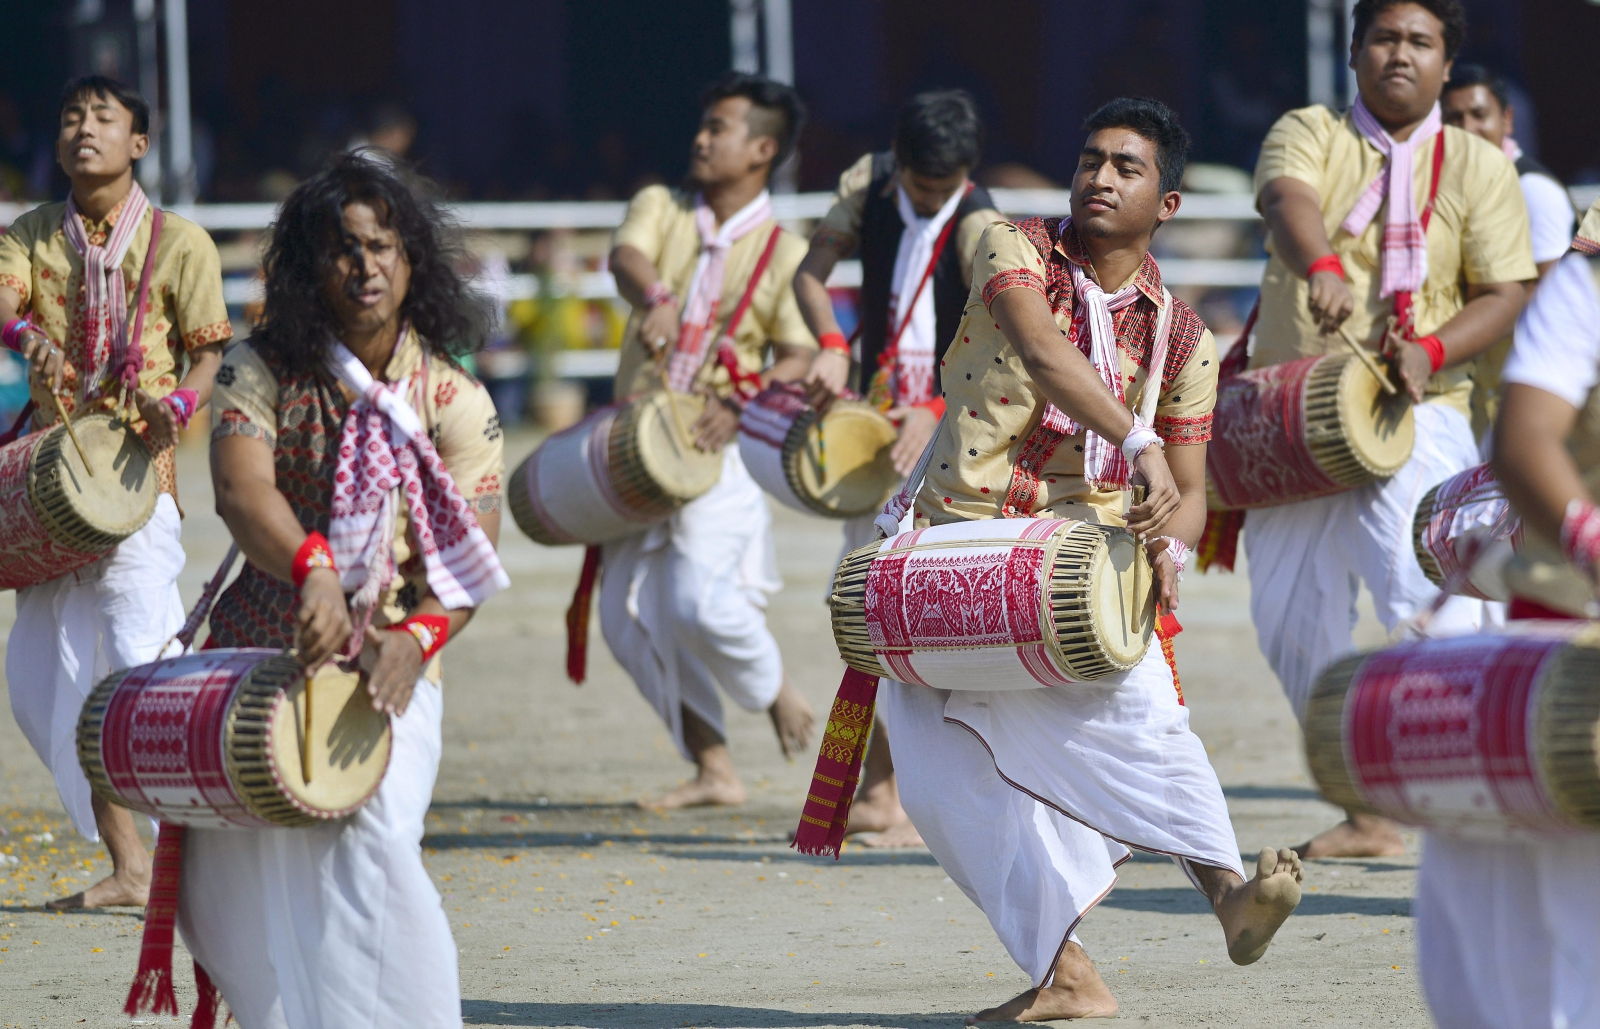 Essays On Importance Of English Indian Cultural Diversity Essay Indian Cultural Diversityindian Culture Is  One Of The Oldest And Unique In Argumentative Essay High School also The Importance Of Learning English Essay Indian Cultural Diversity Essay  Coursework Writing Service  Essay About Health